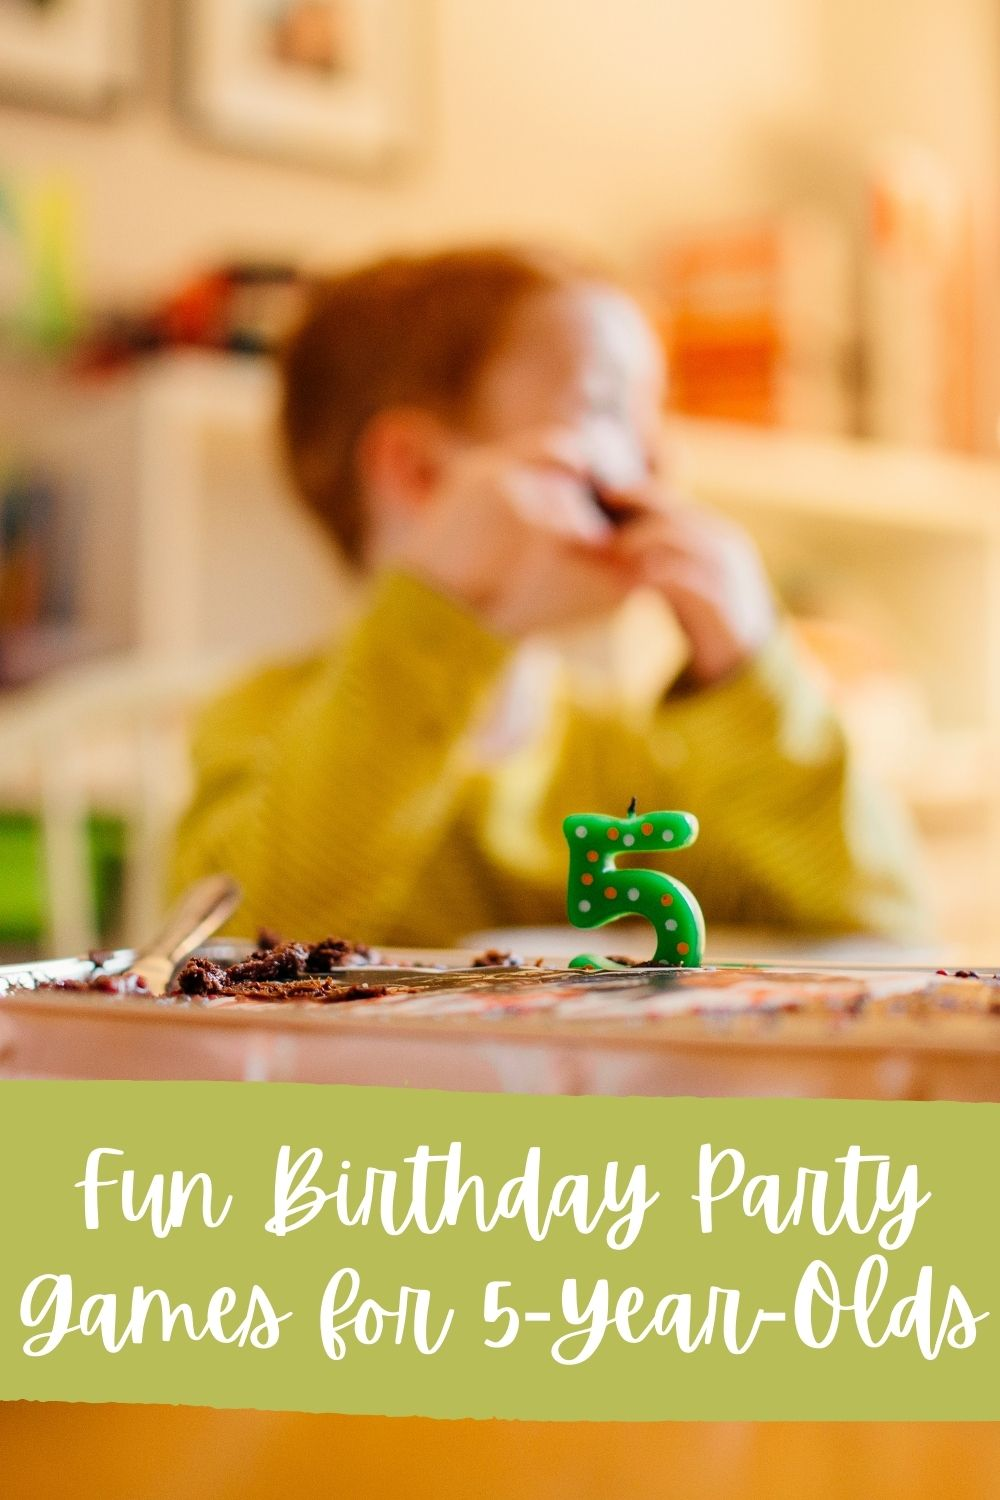 Fun Birthday Party Games for 5 Year Olds